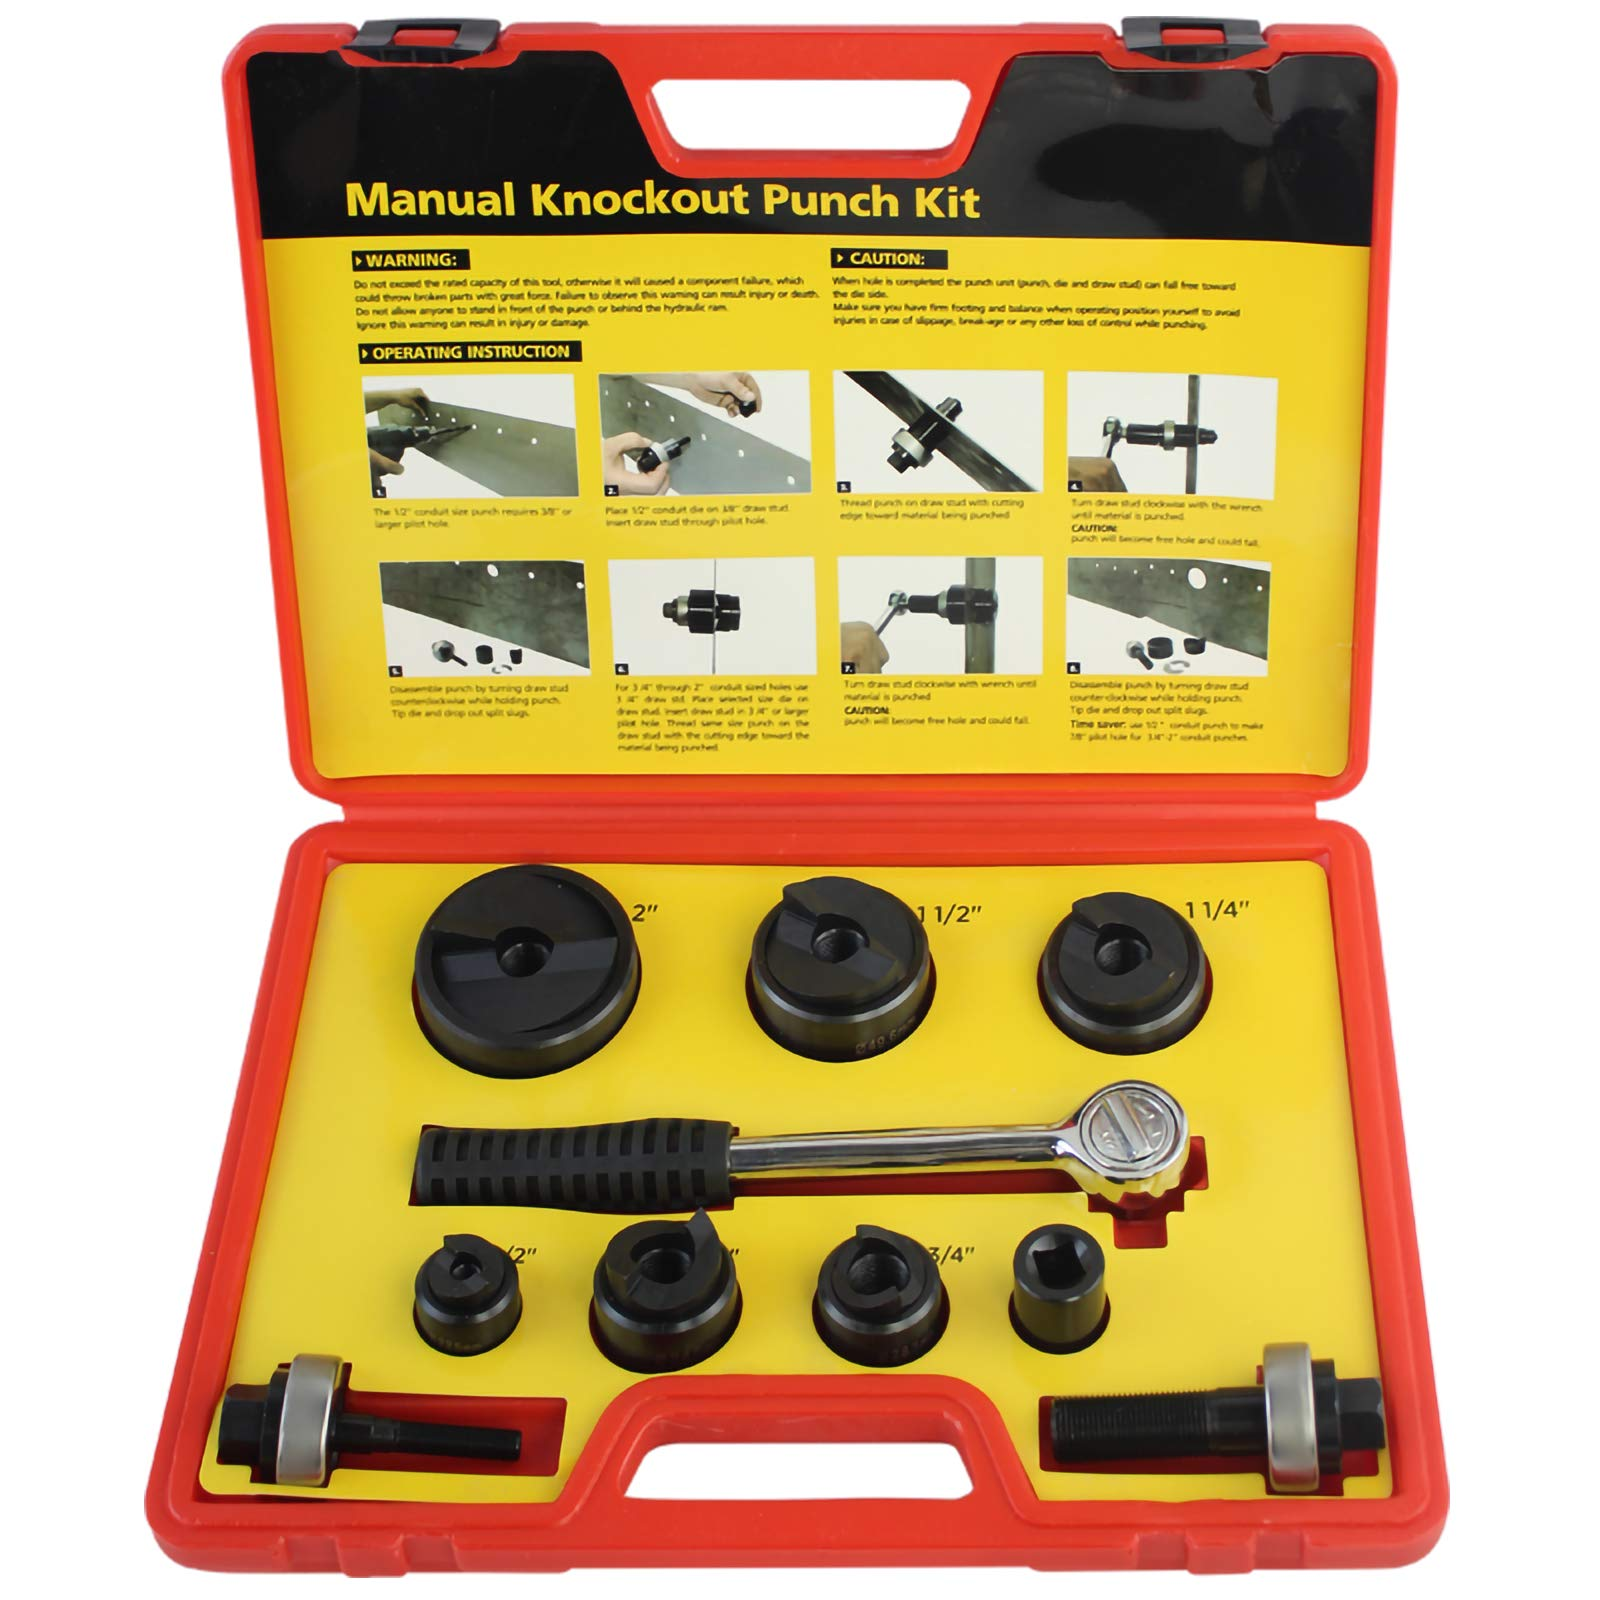 IBOSAD Manual Knockout Hole Punch Driver Kit 1/2 to 2 inch Electrical Conduit Hole Cutter Set KO Tool Kit by IBOSAD